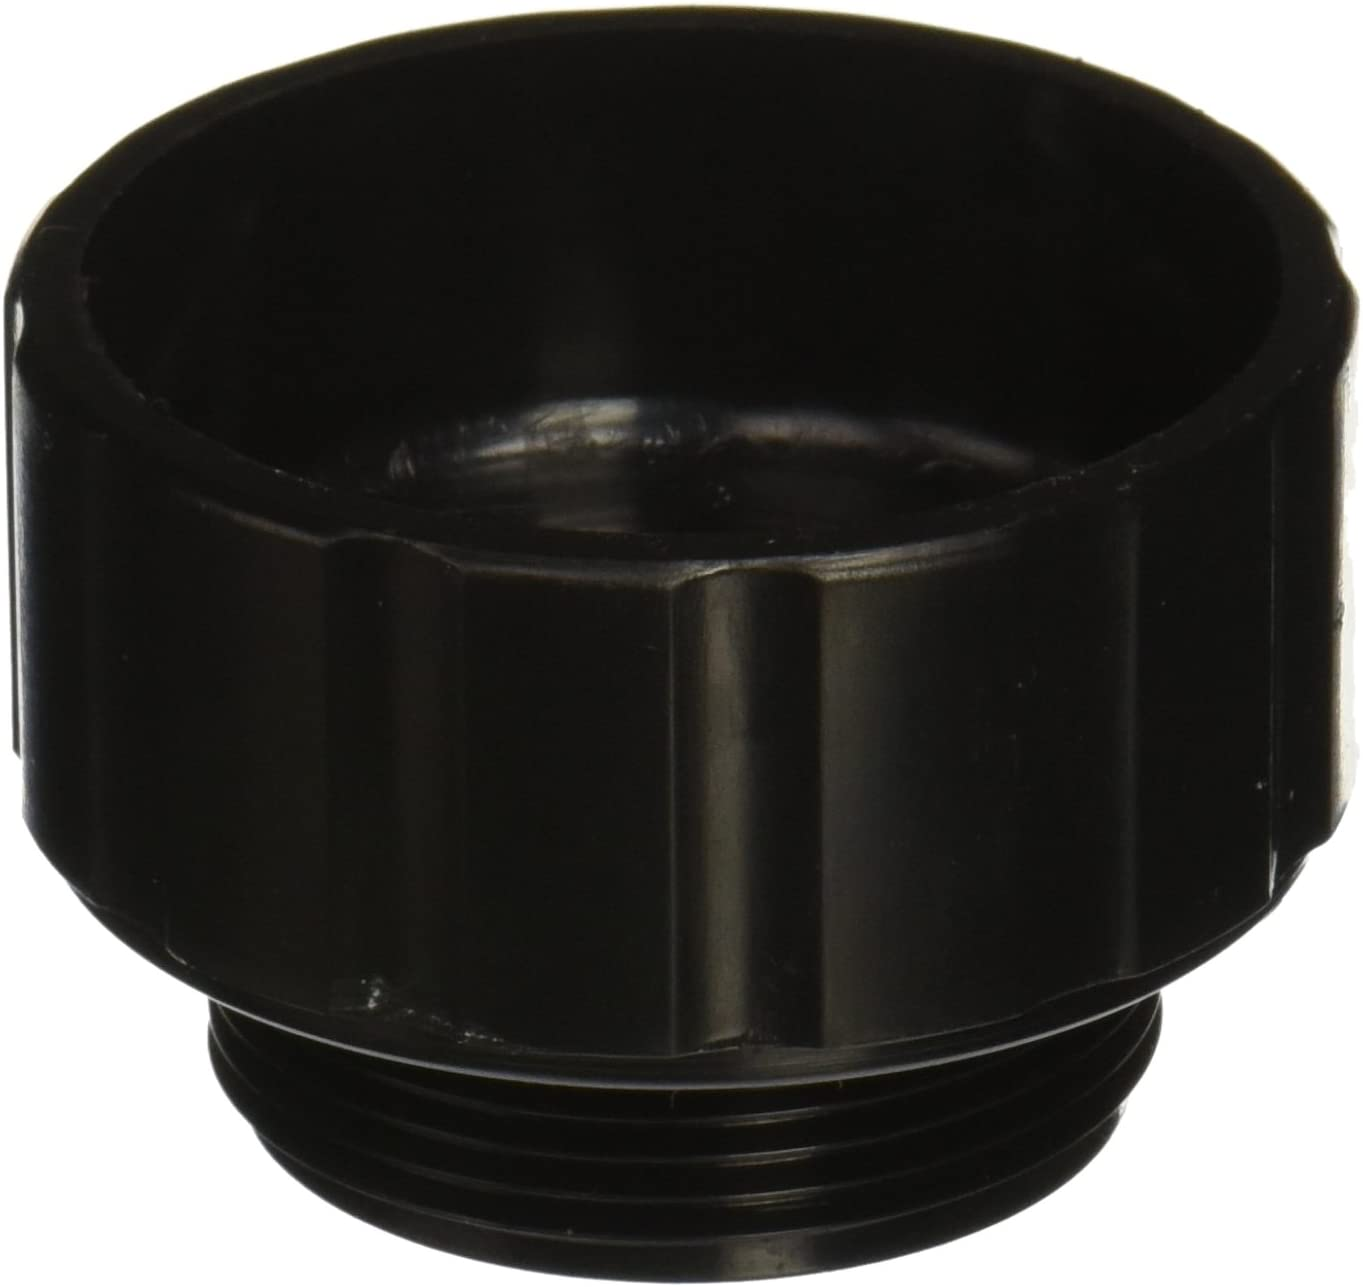 Hayward D.E.CX12866 Gauge Port Adapter Replacement for Hayward Perflex Extended Cycle Filter